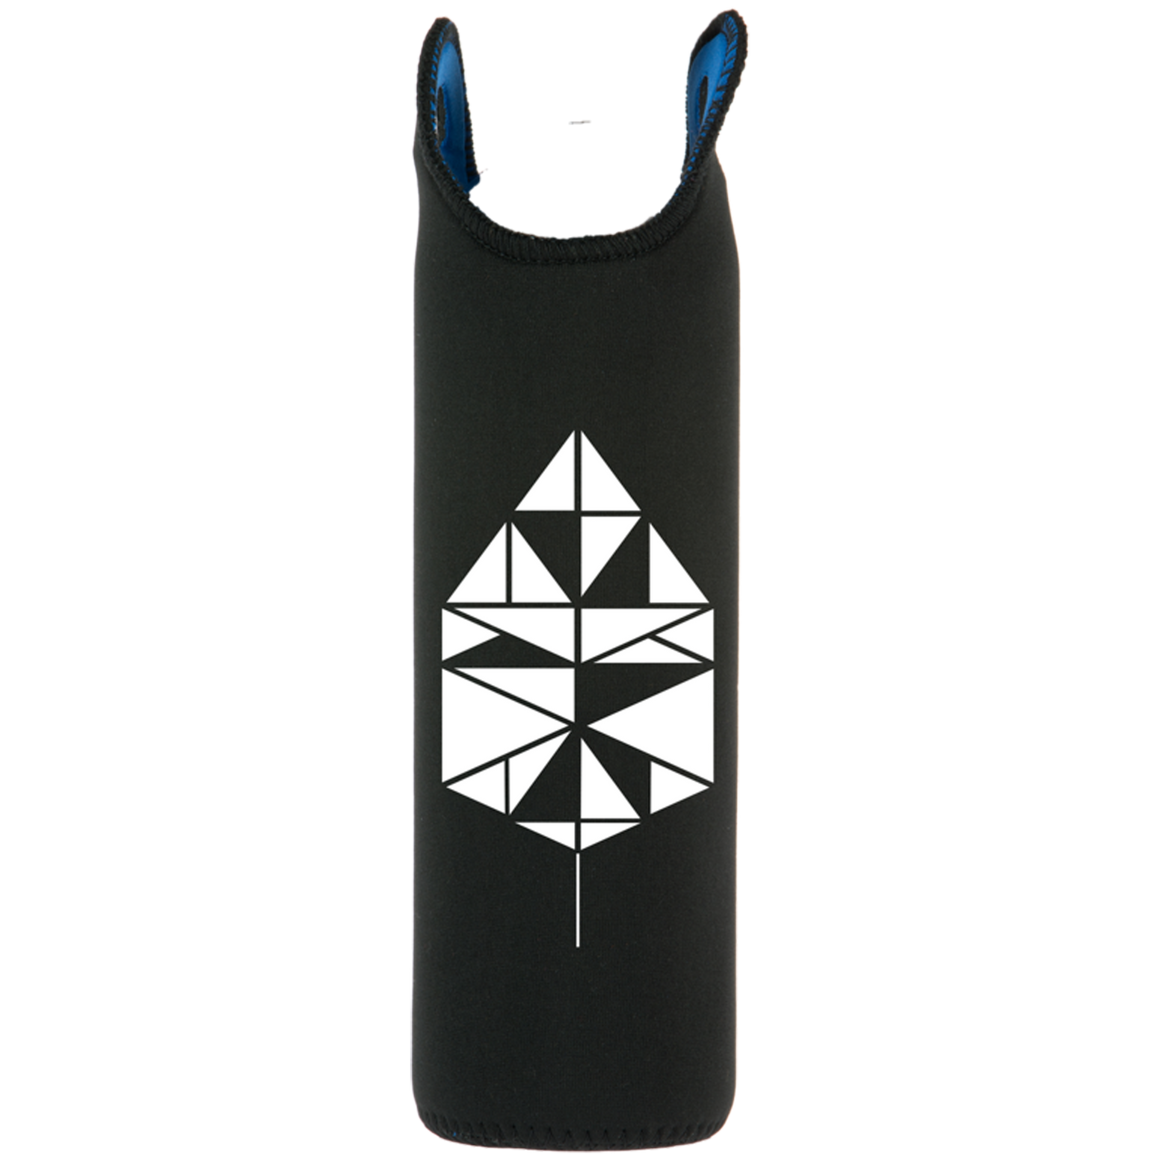 Neo Design - Tangram Protective Sleeve (500/750 ml)